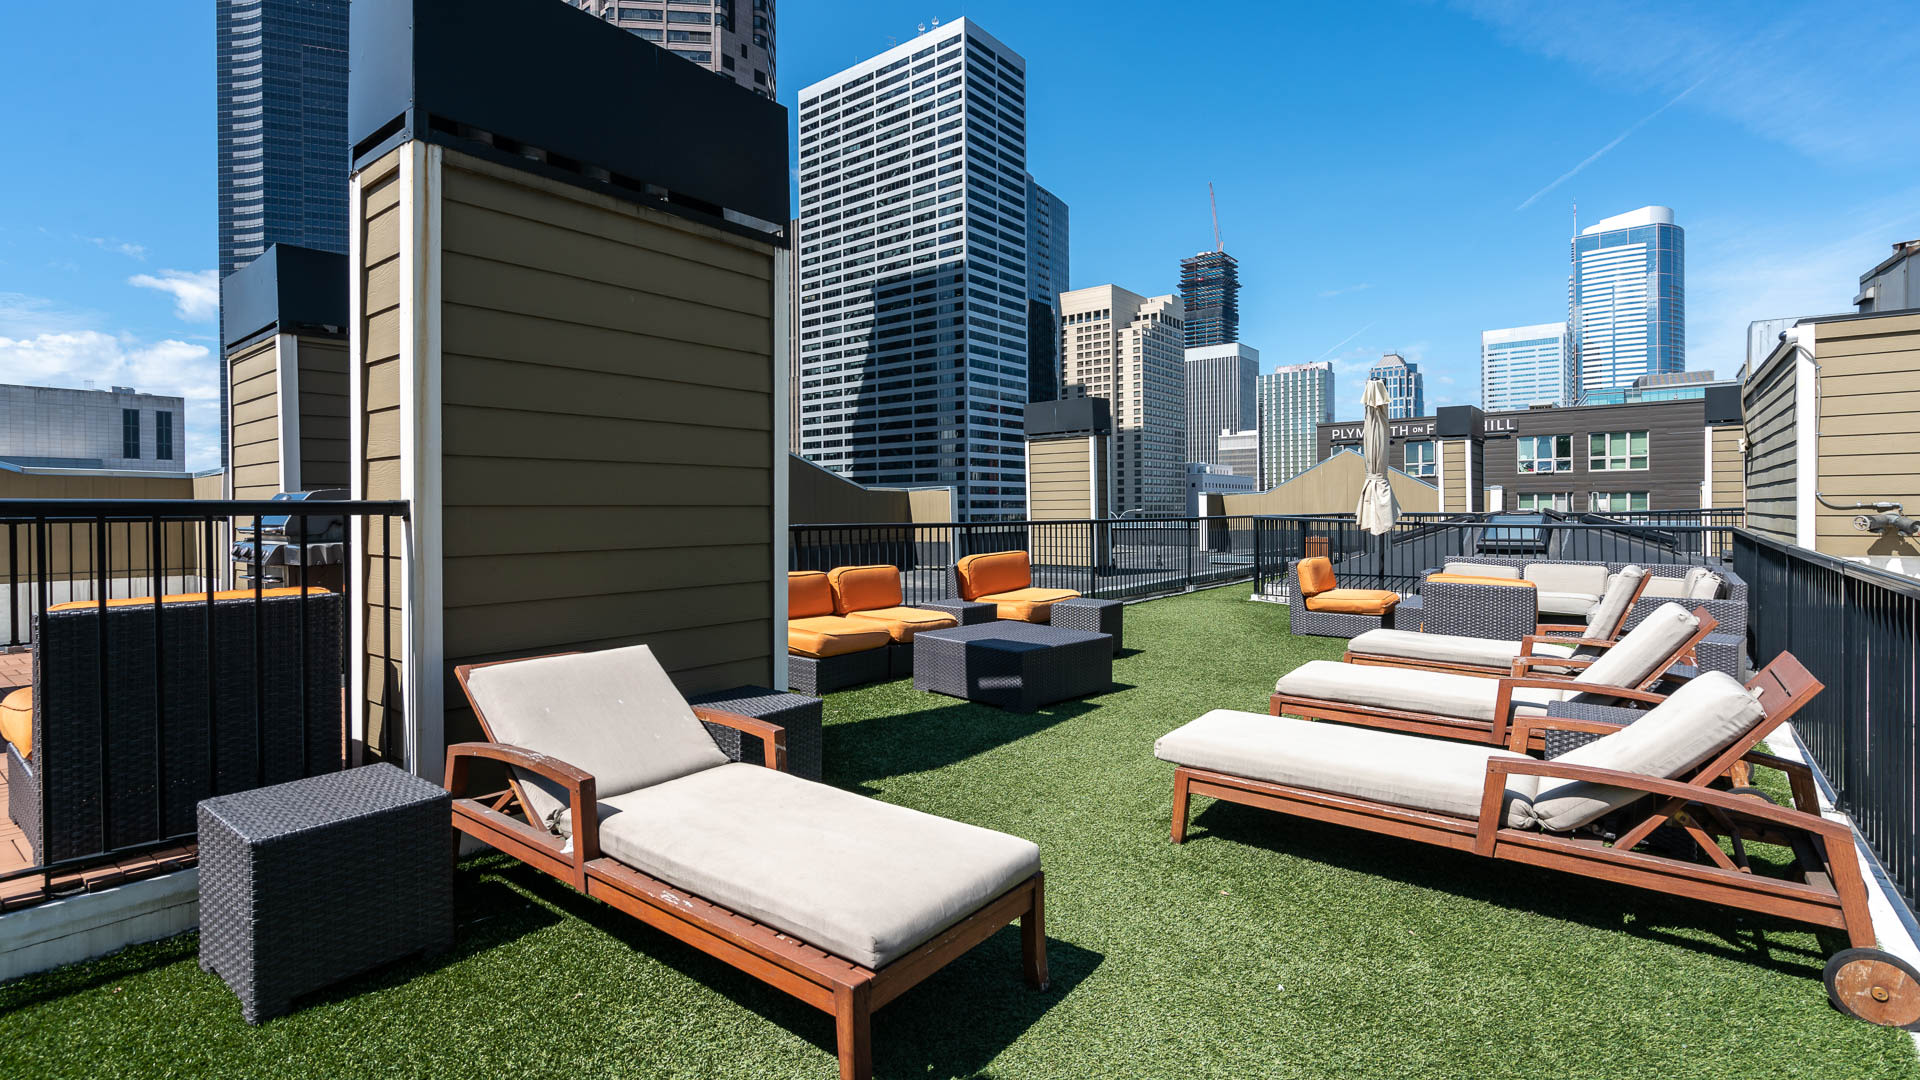 Seventh and James Apartments - Rooftop Lounge